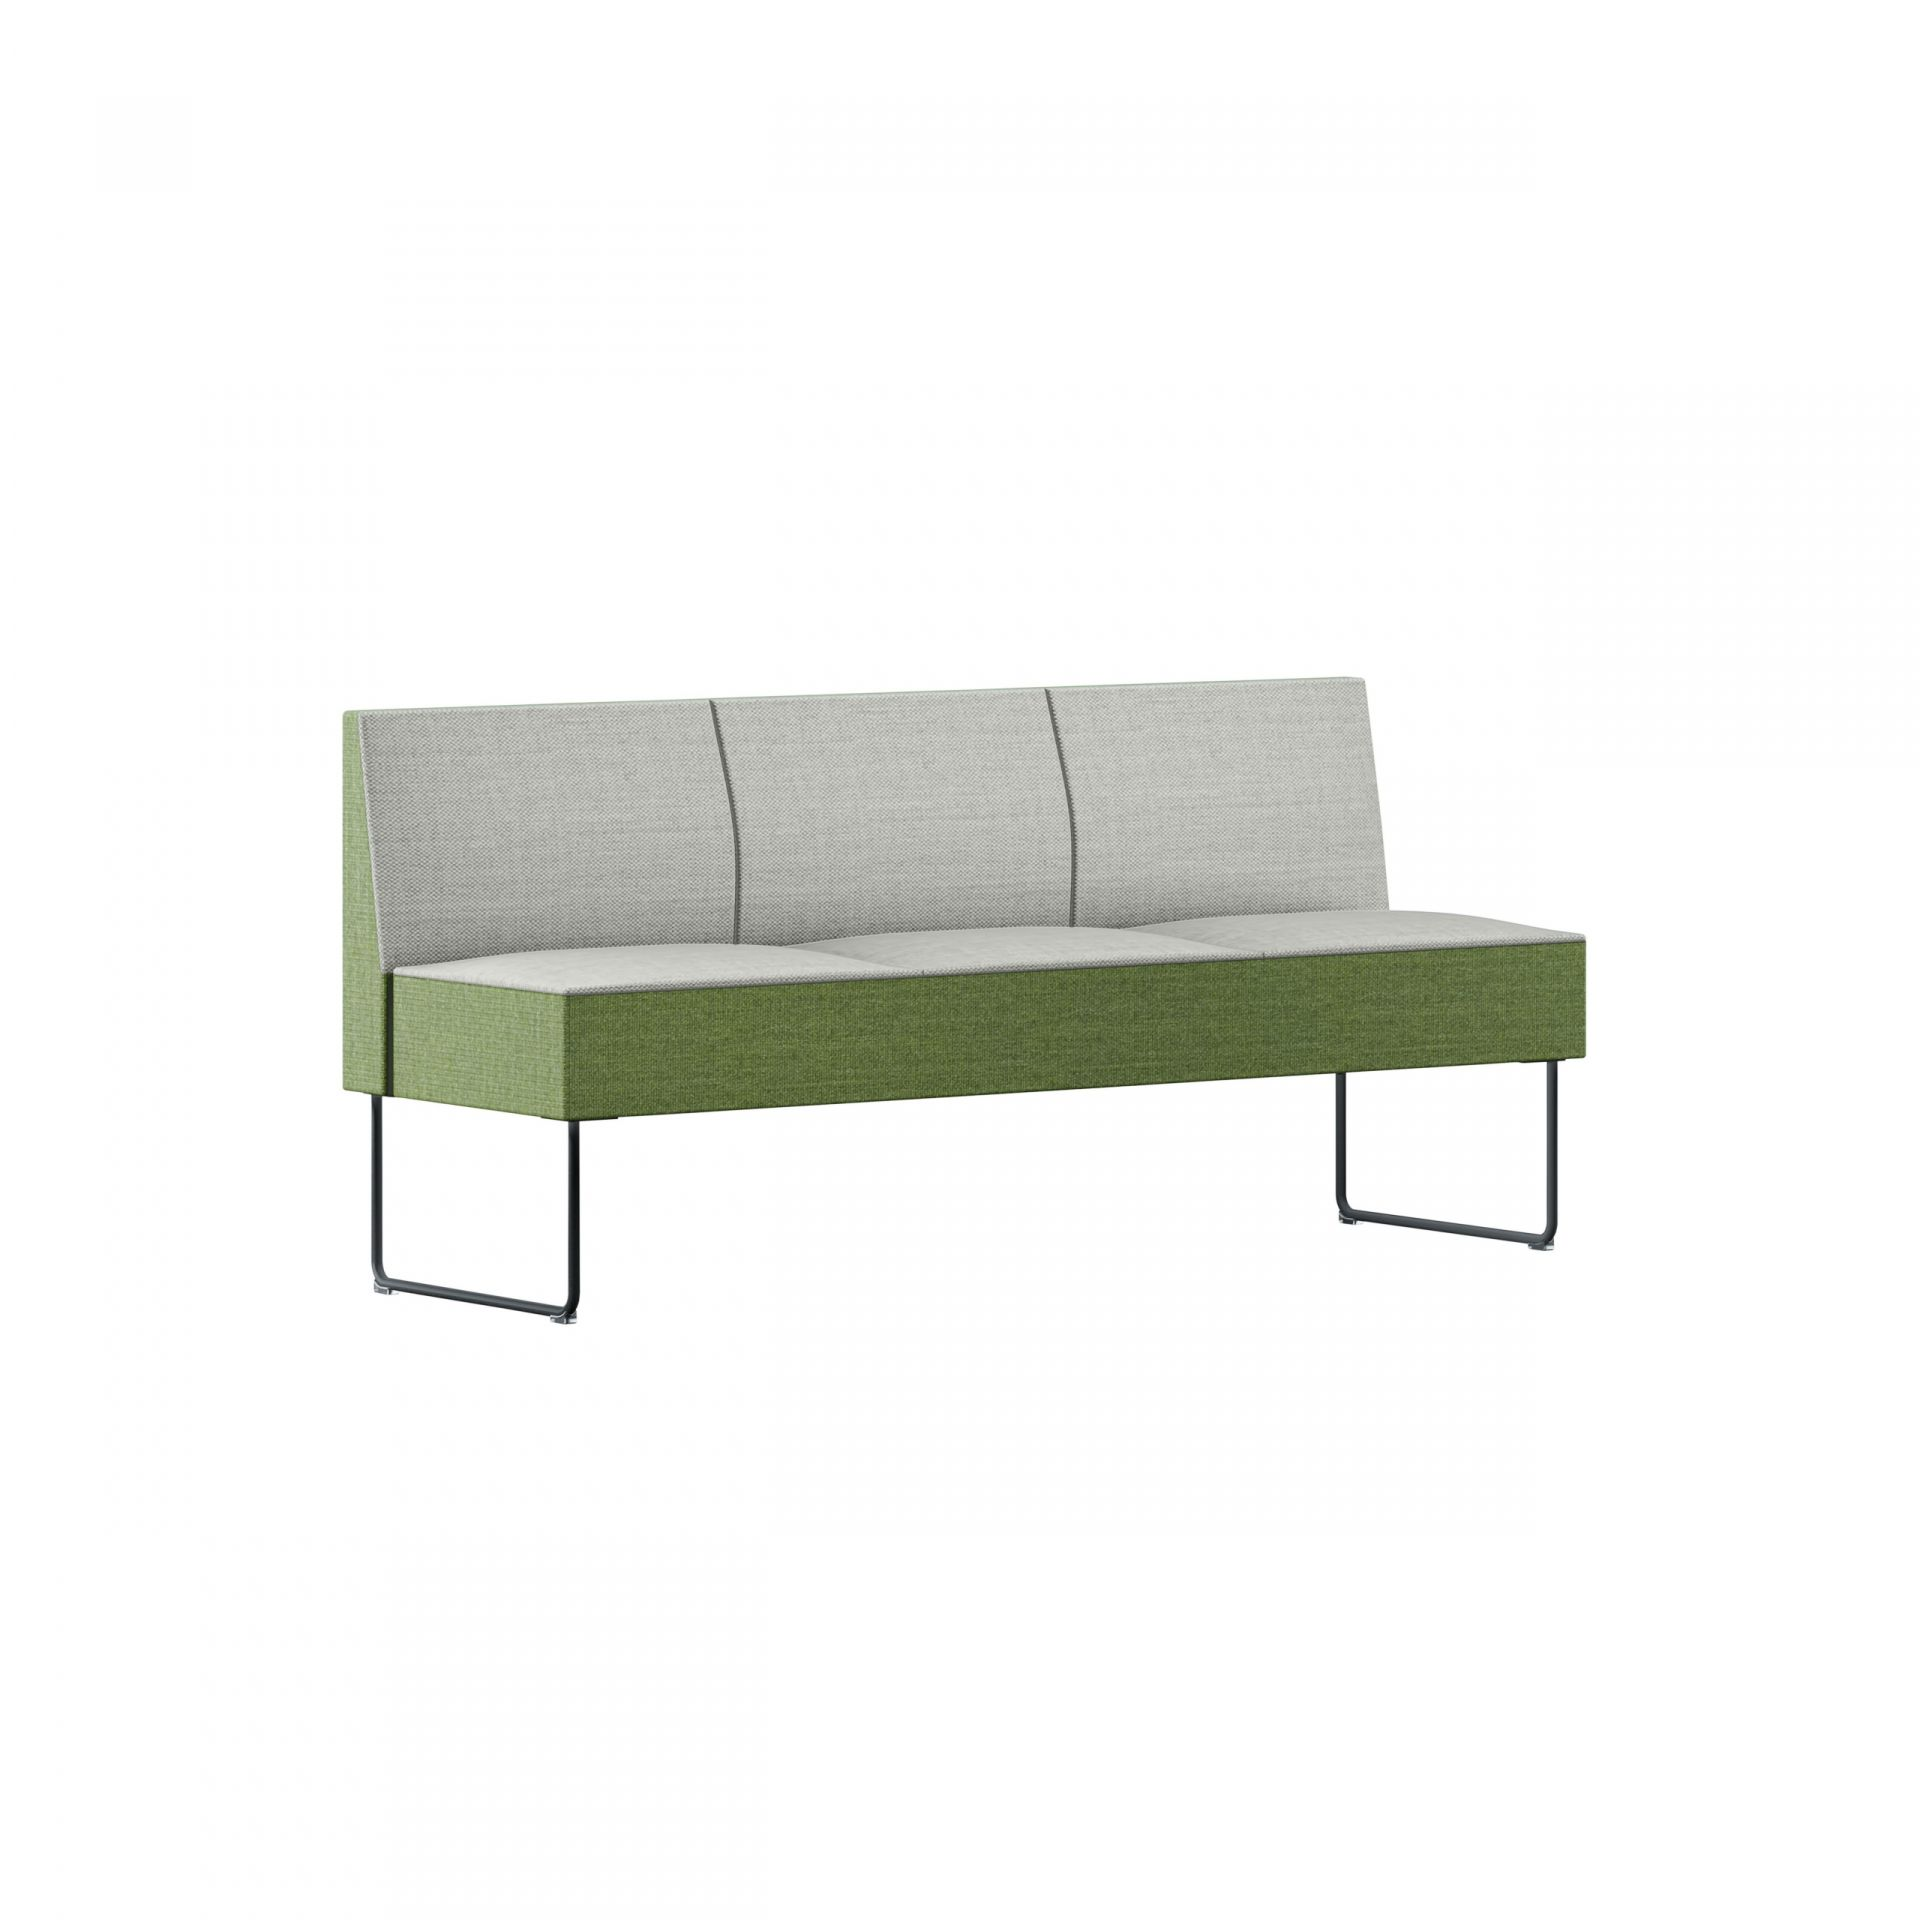 Mingle Sofa product image 10